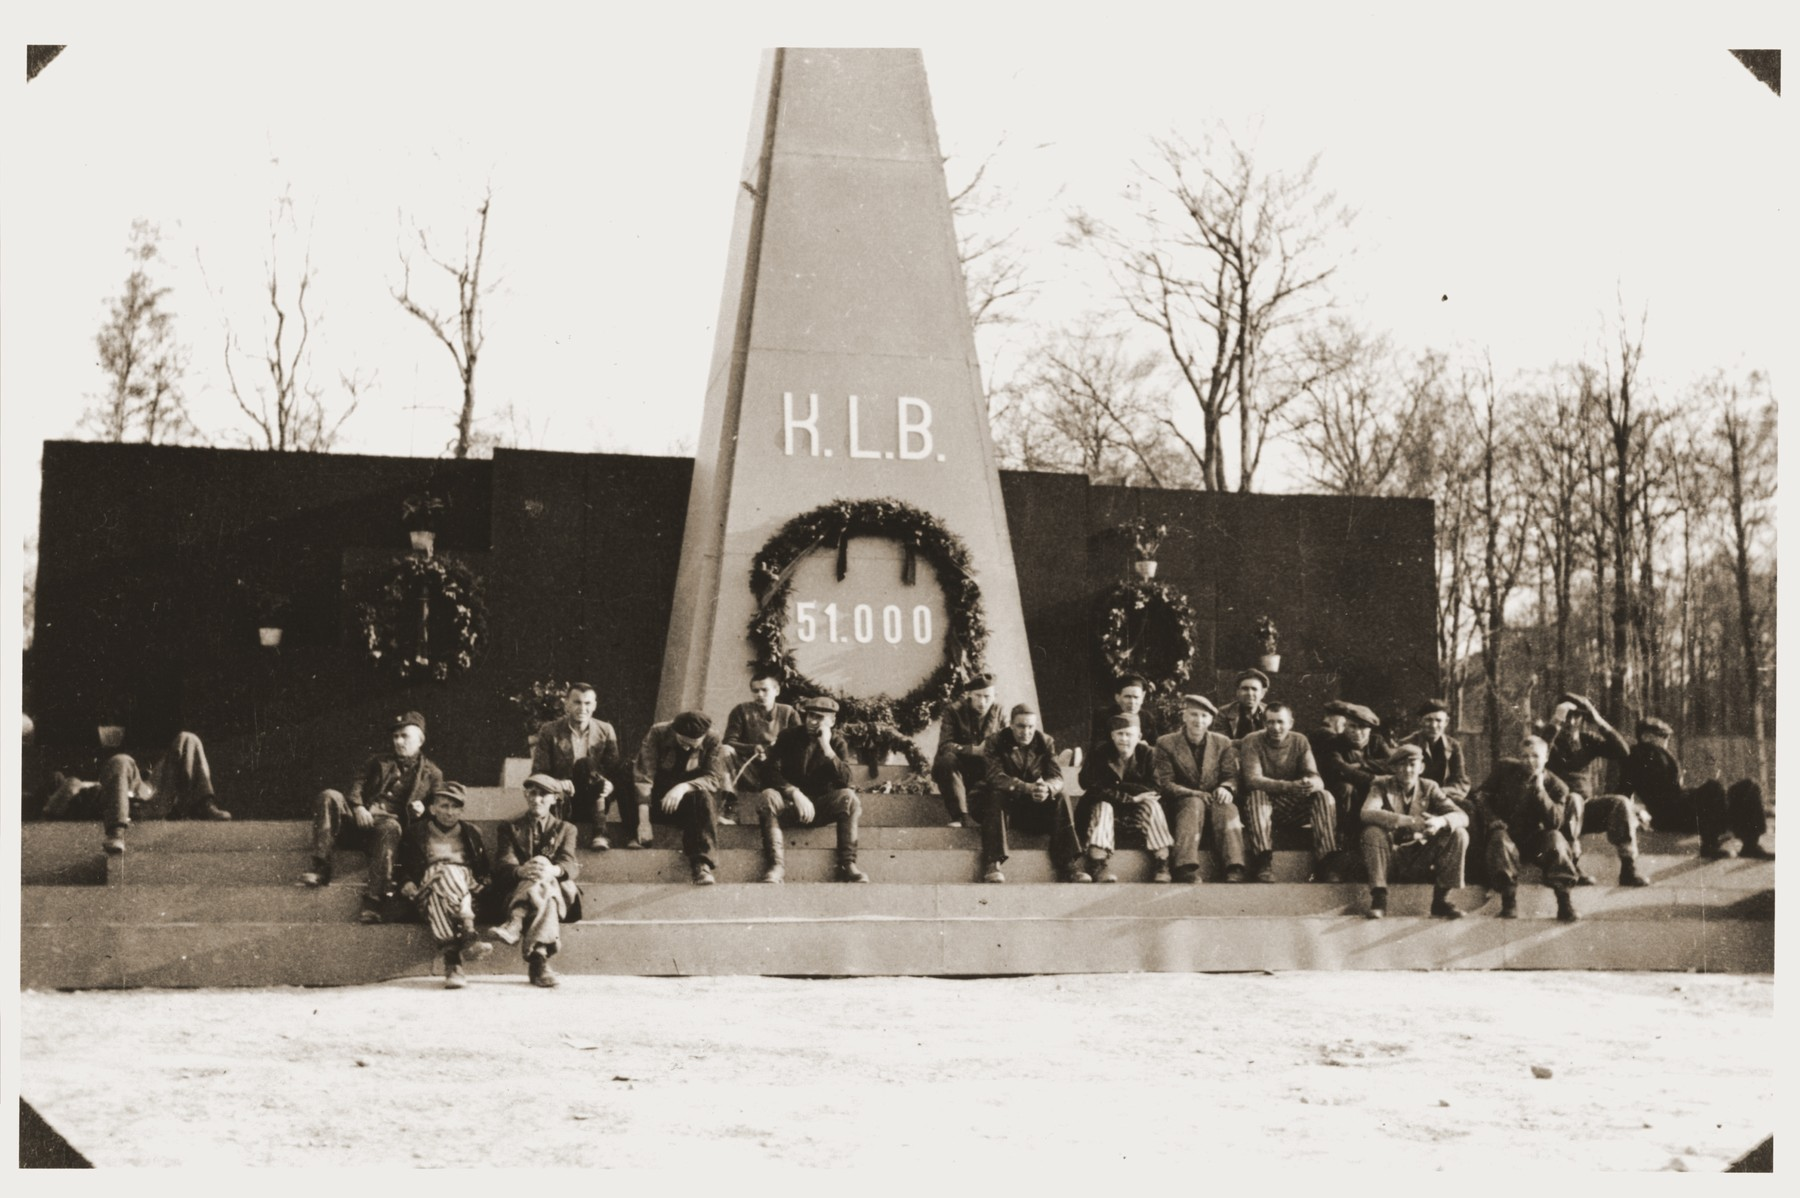 Displaced persons sit in front of a monument erected to the memory of the 51,000 victims of Buchenwald.